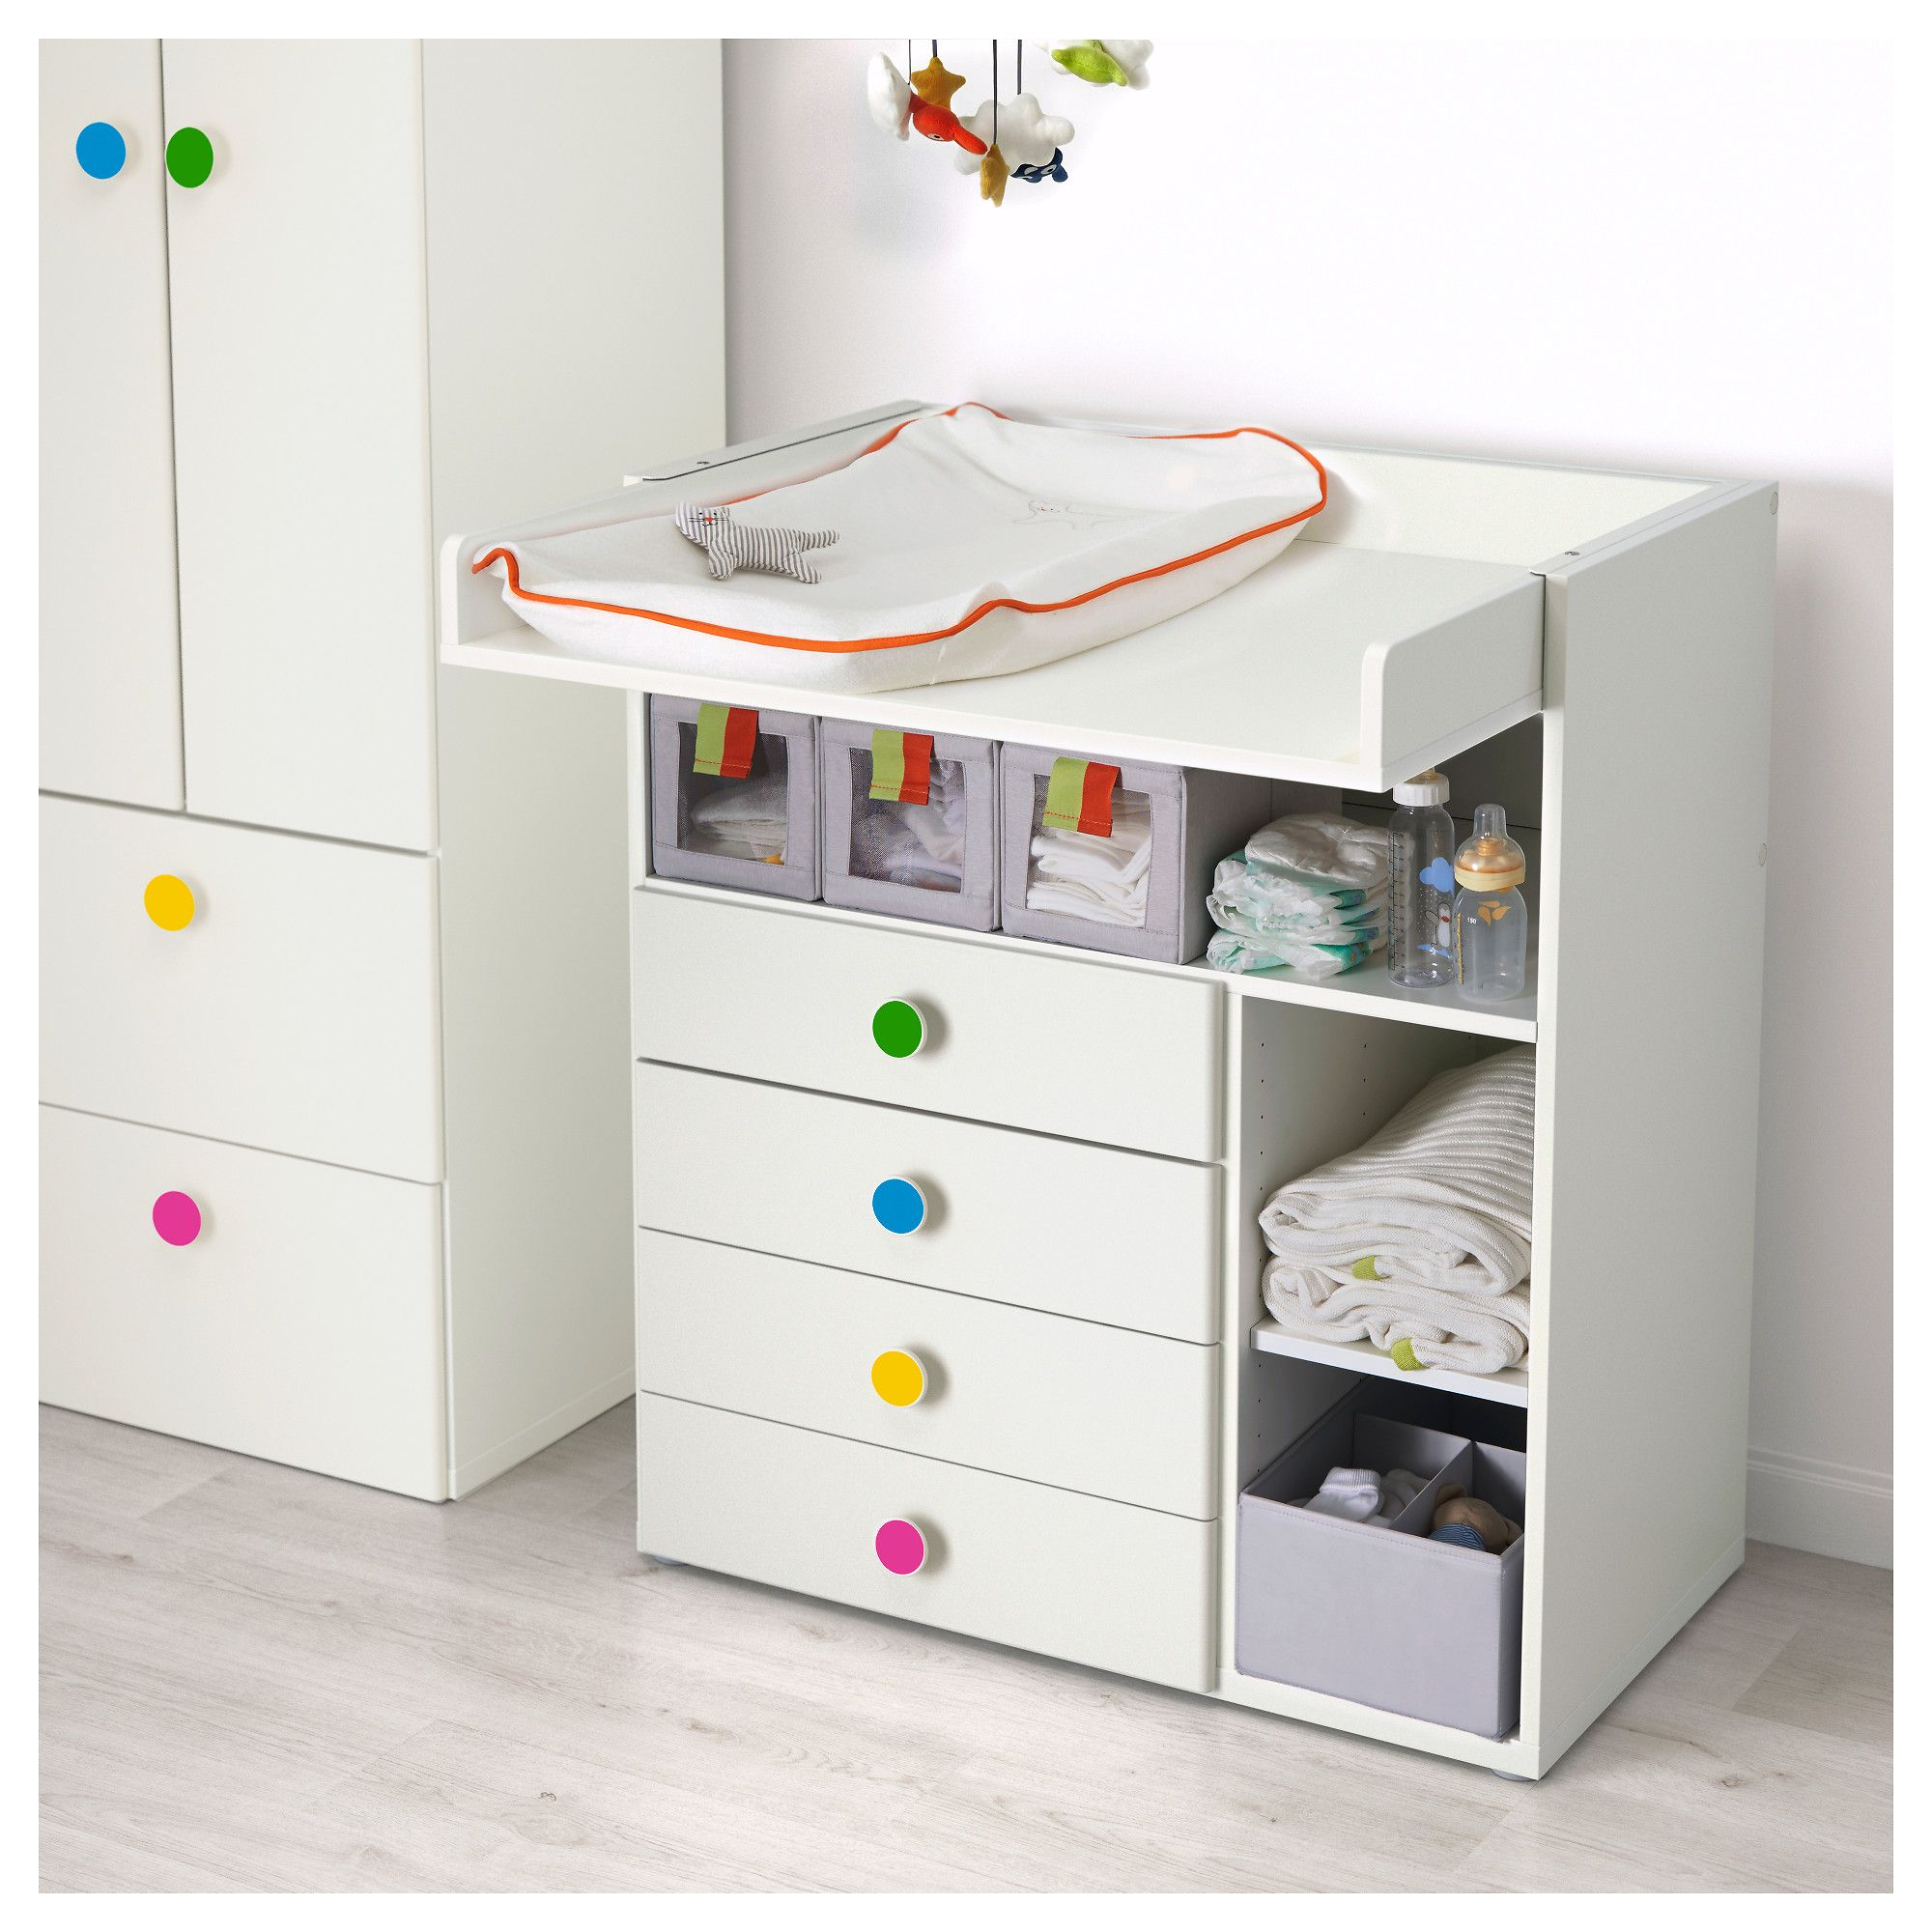 Kinderzimmer Geuther Bianco Ikea Stuva FÖlja Changing Table With 4 Drawers White Room